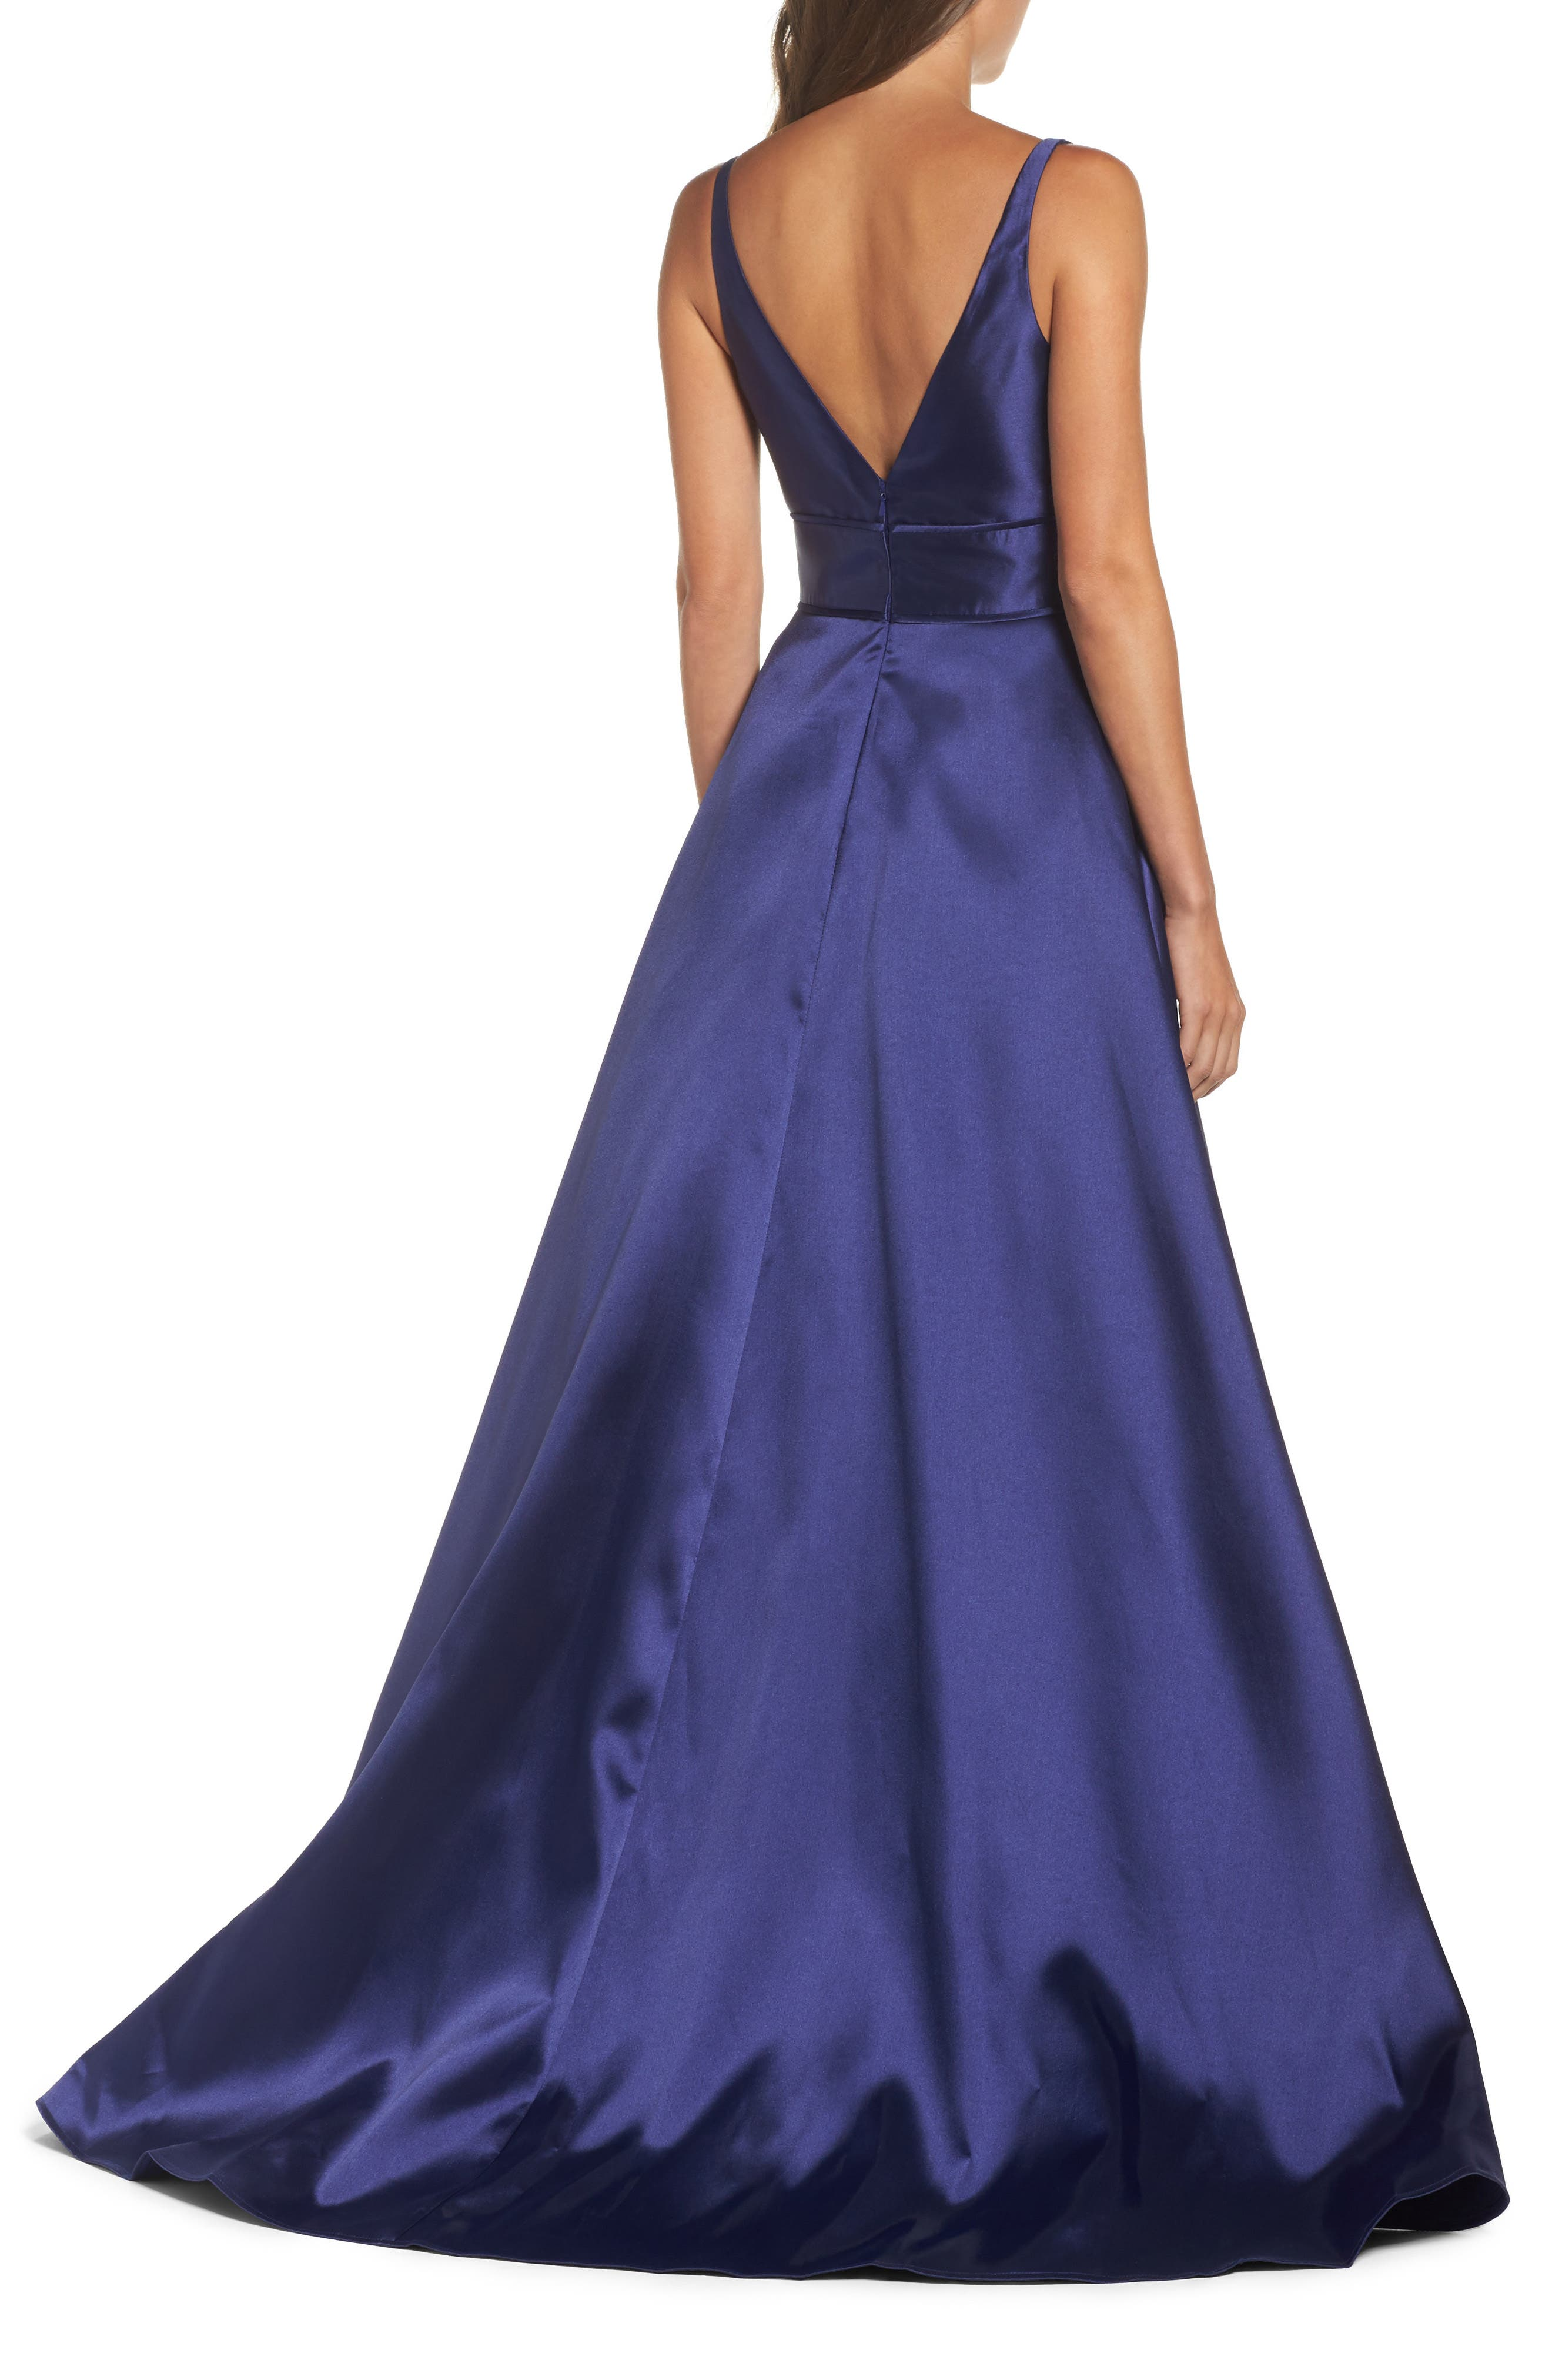 Plunging Sweetheart Neck Ballgown,                             Alternate thumbnail 2, color,                             NAVY